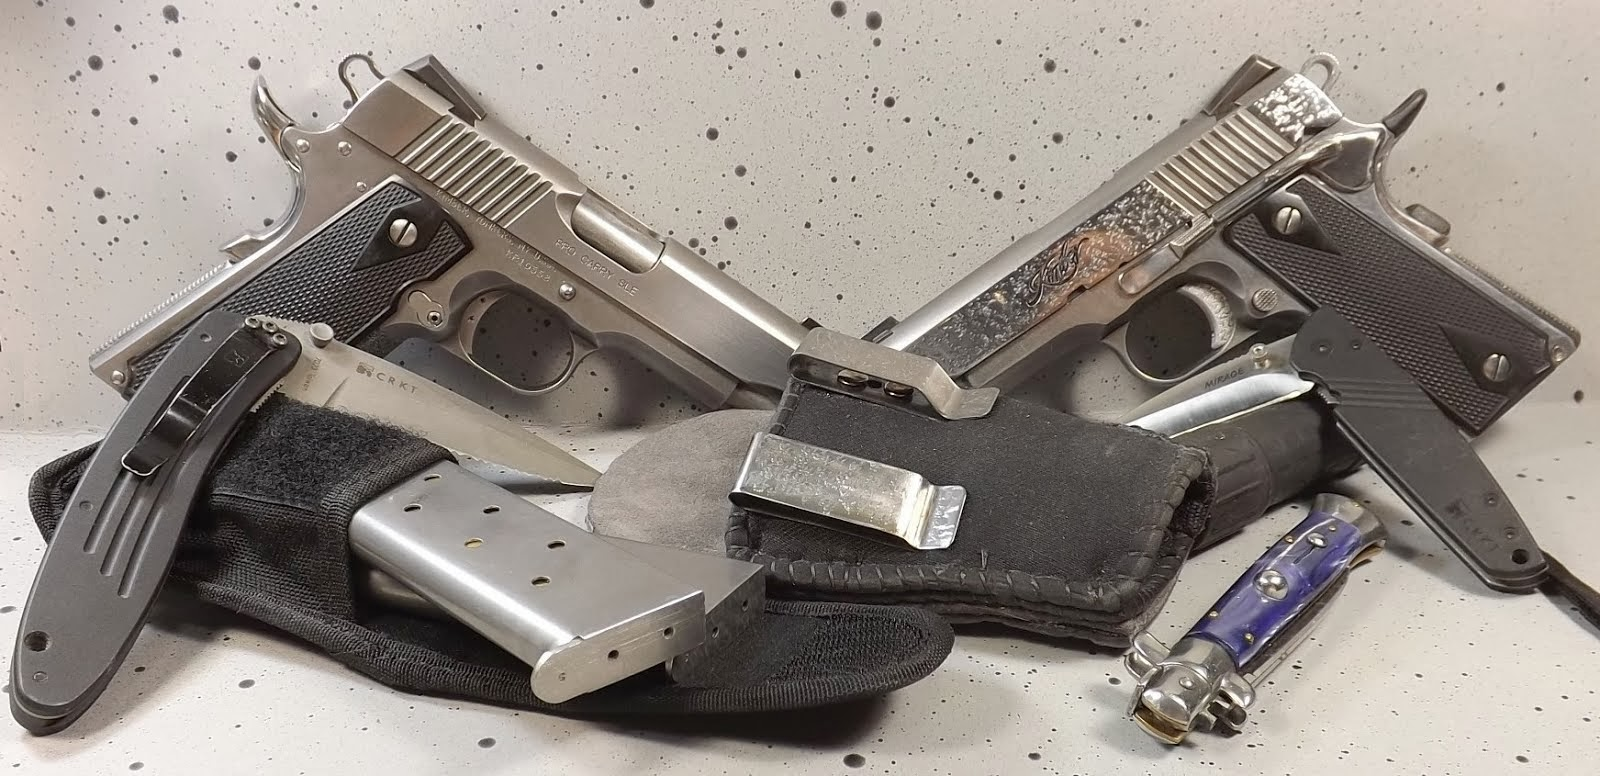 Show us you CCW setups - Concealed Carrying & Personal Protection